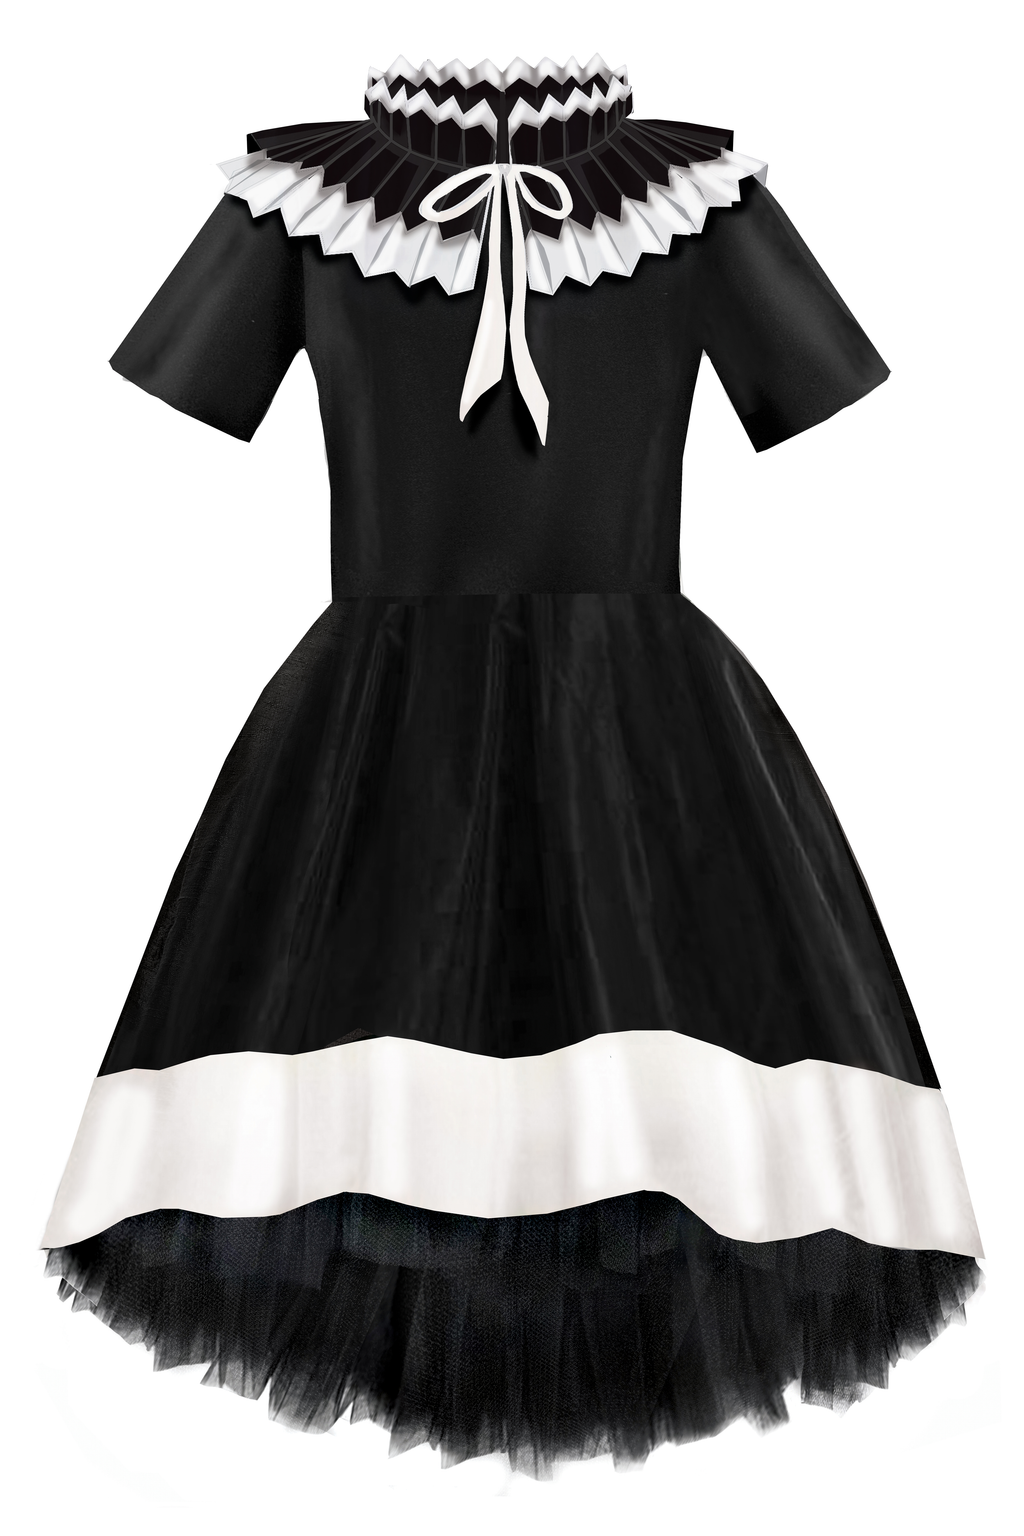 Stunning Black & Ivory Taffeta Girls High-low Dress with Detachable Pleated Collar - LAZY FRANCIS - Shop in store at 406 Kings Road, Chelsea, London or shop online at www.lazyfrancis.com